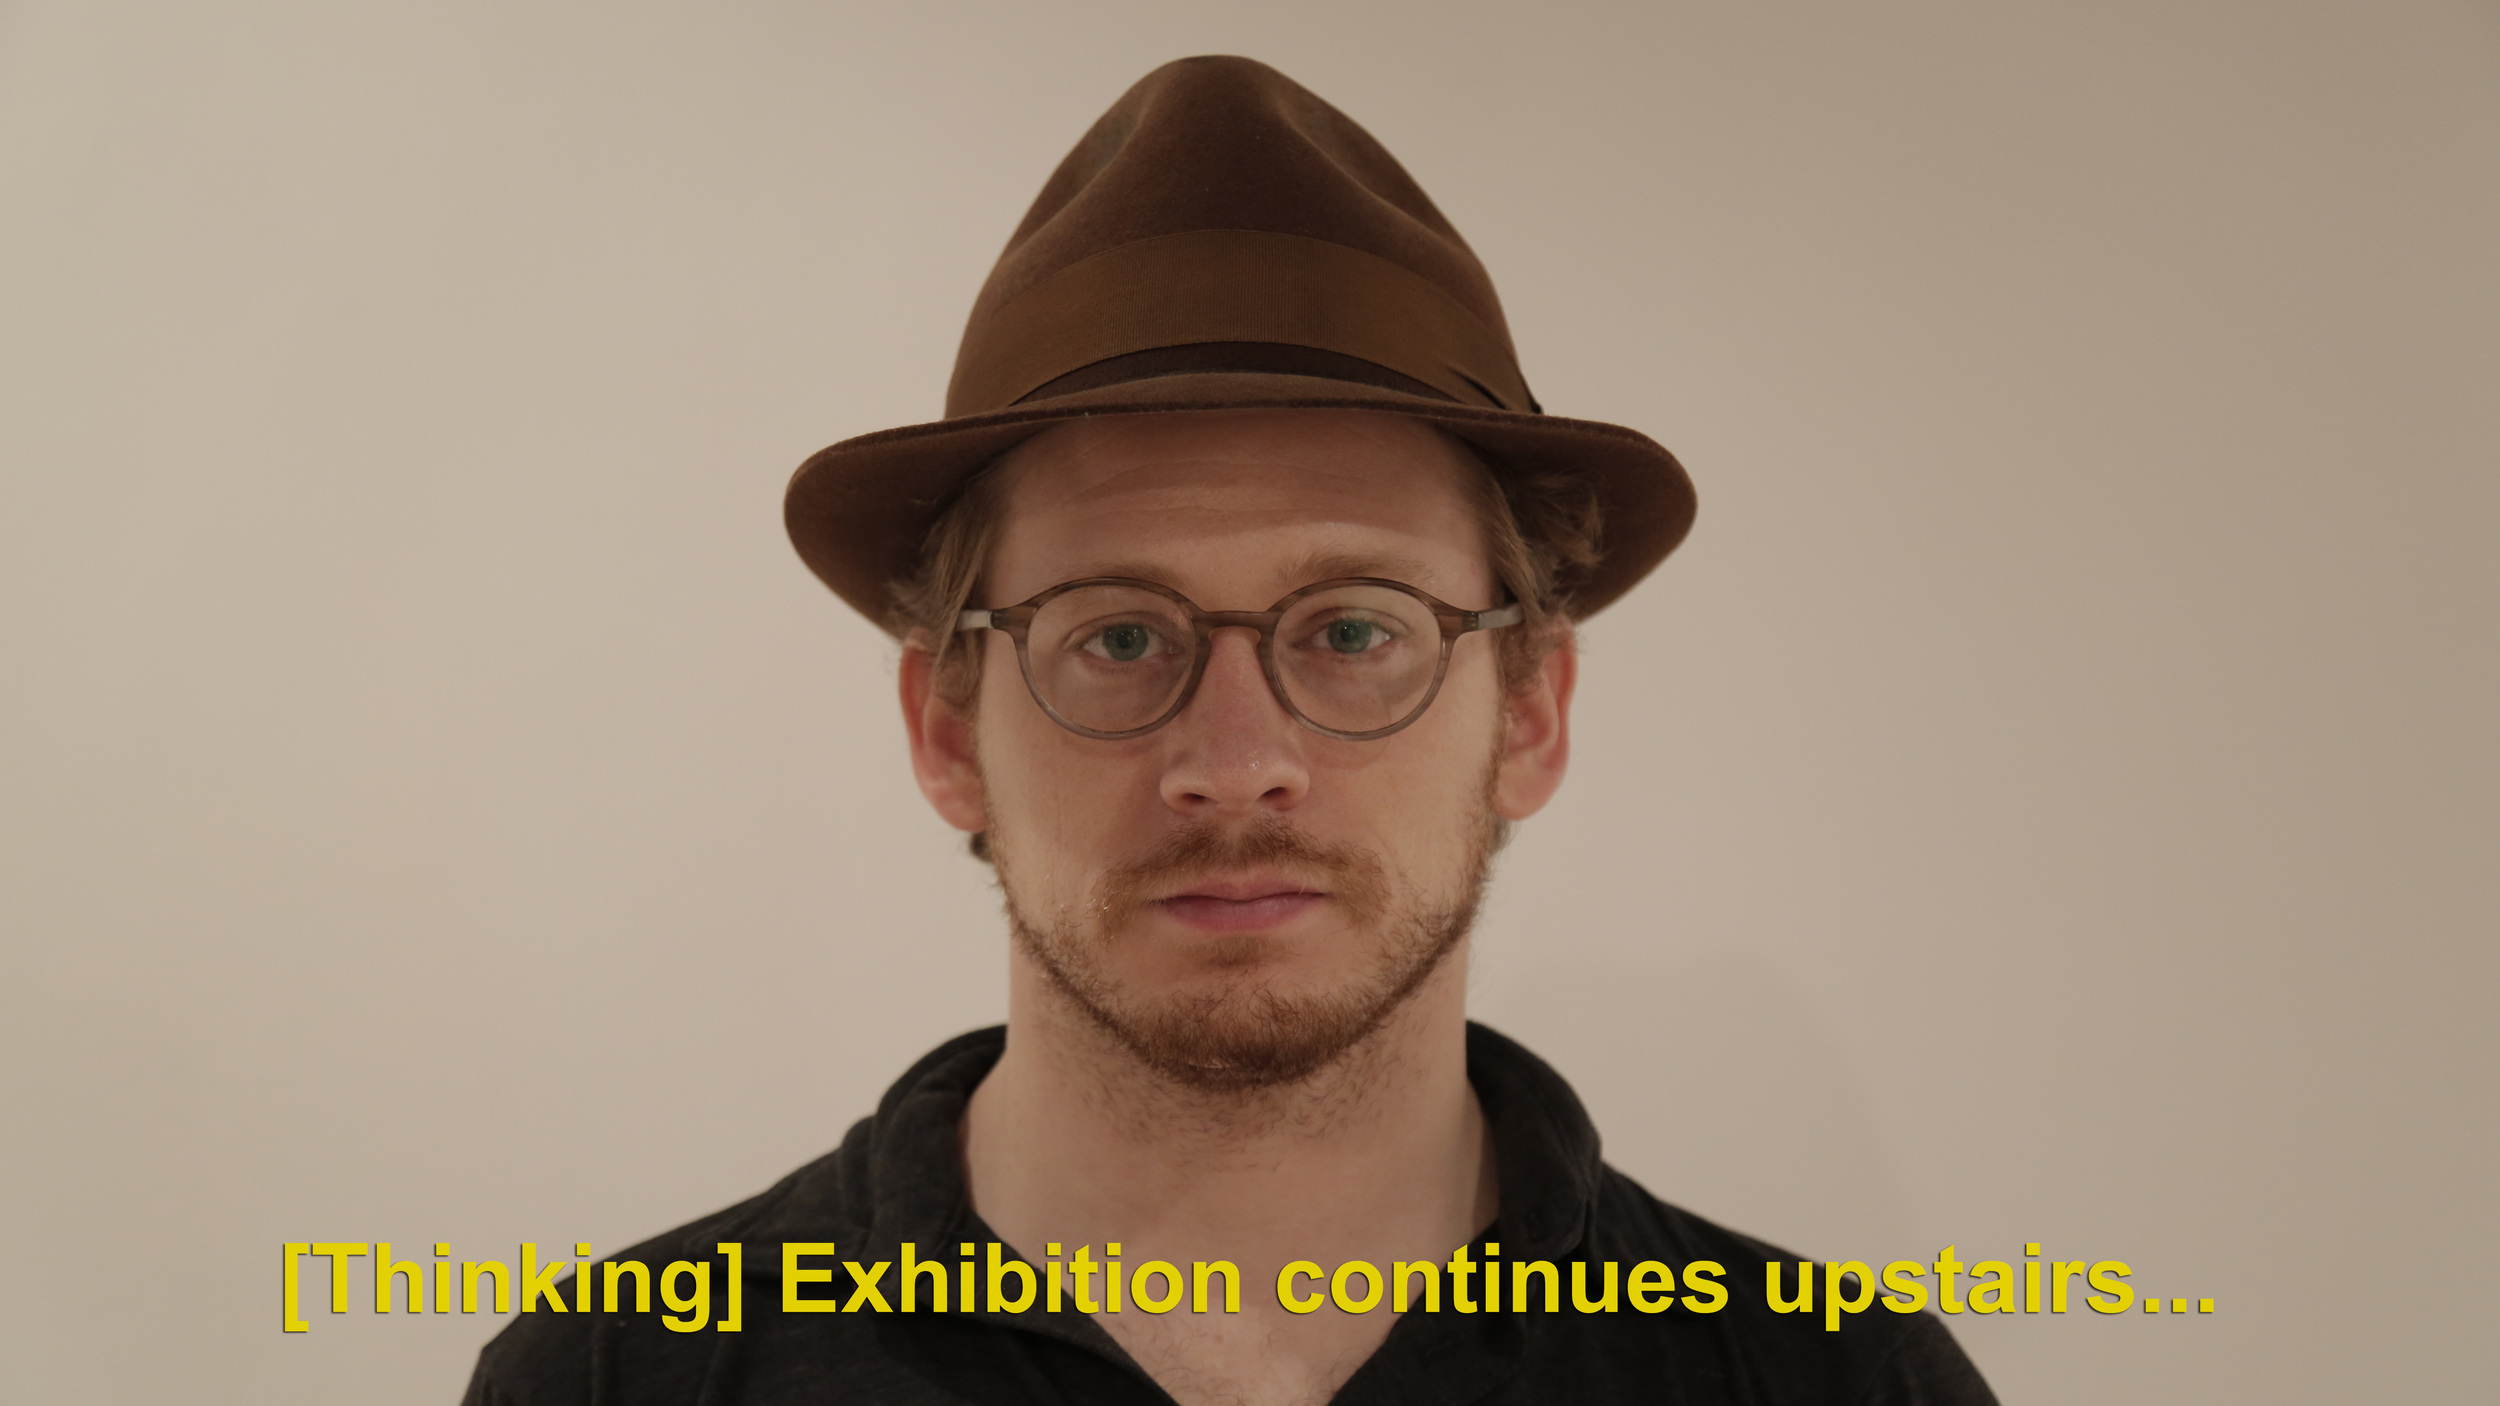 Exhibition-Continues-Upstairs-Man-Bartlett.jpg